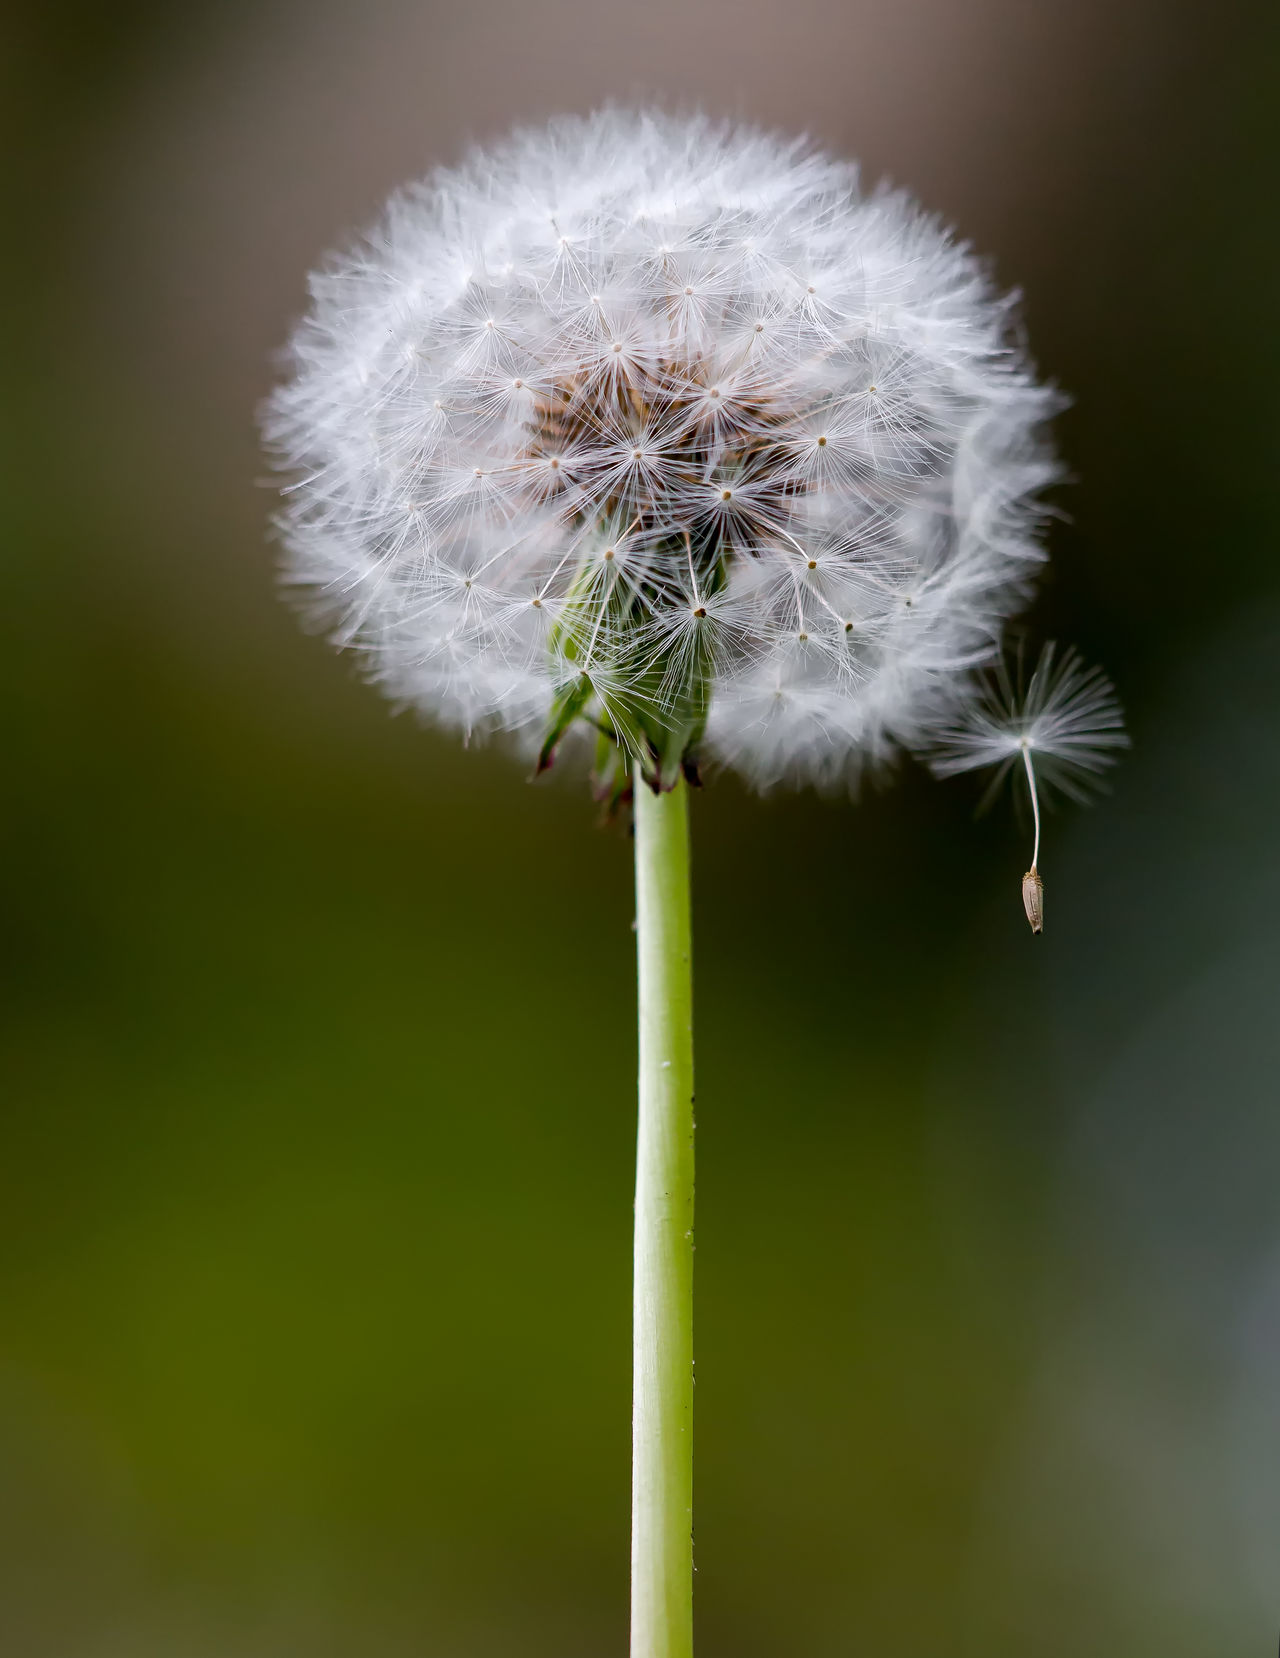 Dandelion Seed Head Beauty In Nature Blooming Botany Close-up Dandelion Dandelion Seed Day Flower Flower Head Focus On Foreground Fragility Freshness Green Color Growth Nature No People Outdoors Plant Seed Softness Stem Uncultivated